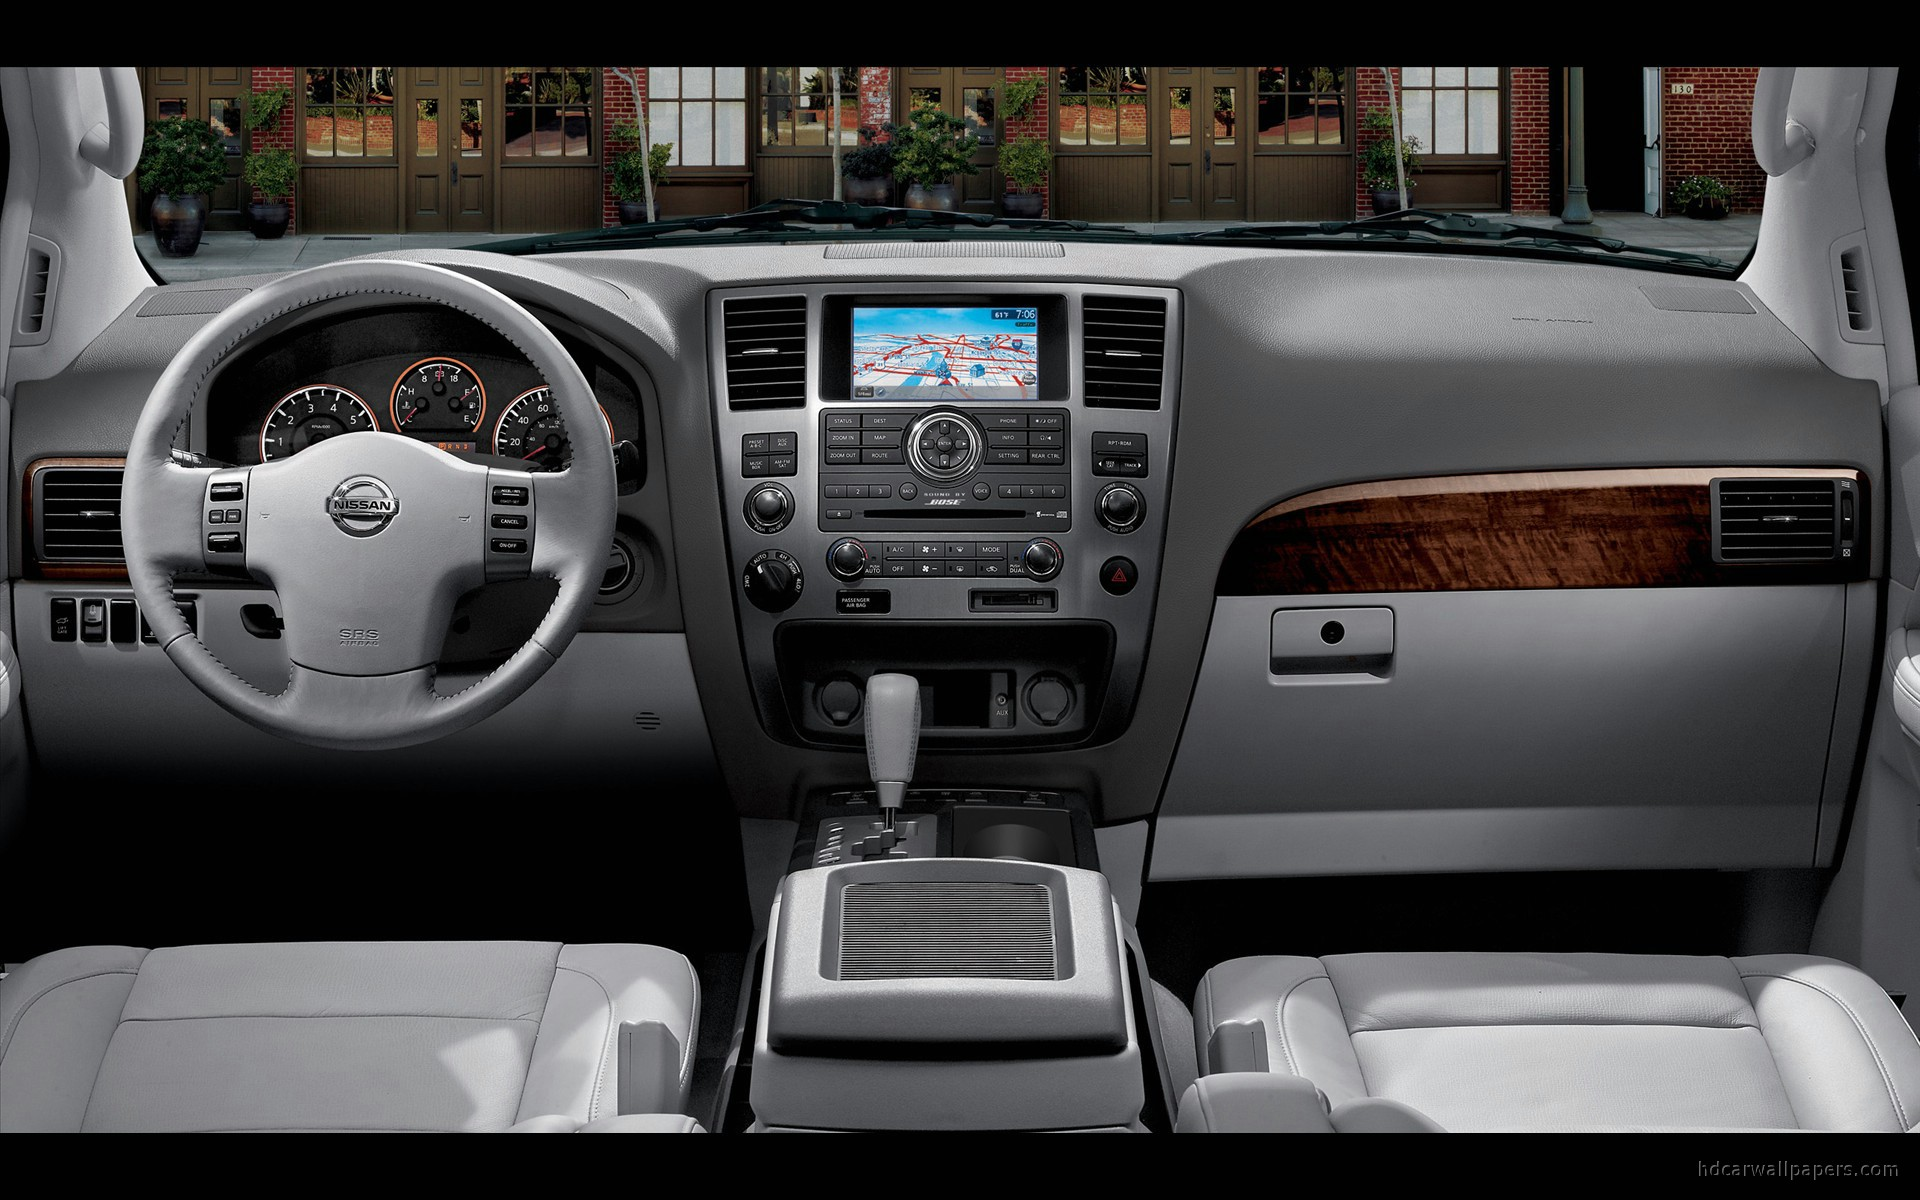 2010 Nissan Armada Interior Wallpaper Hd Car Wallpapers Id 1330